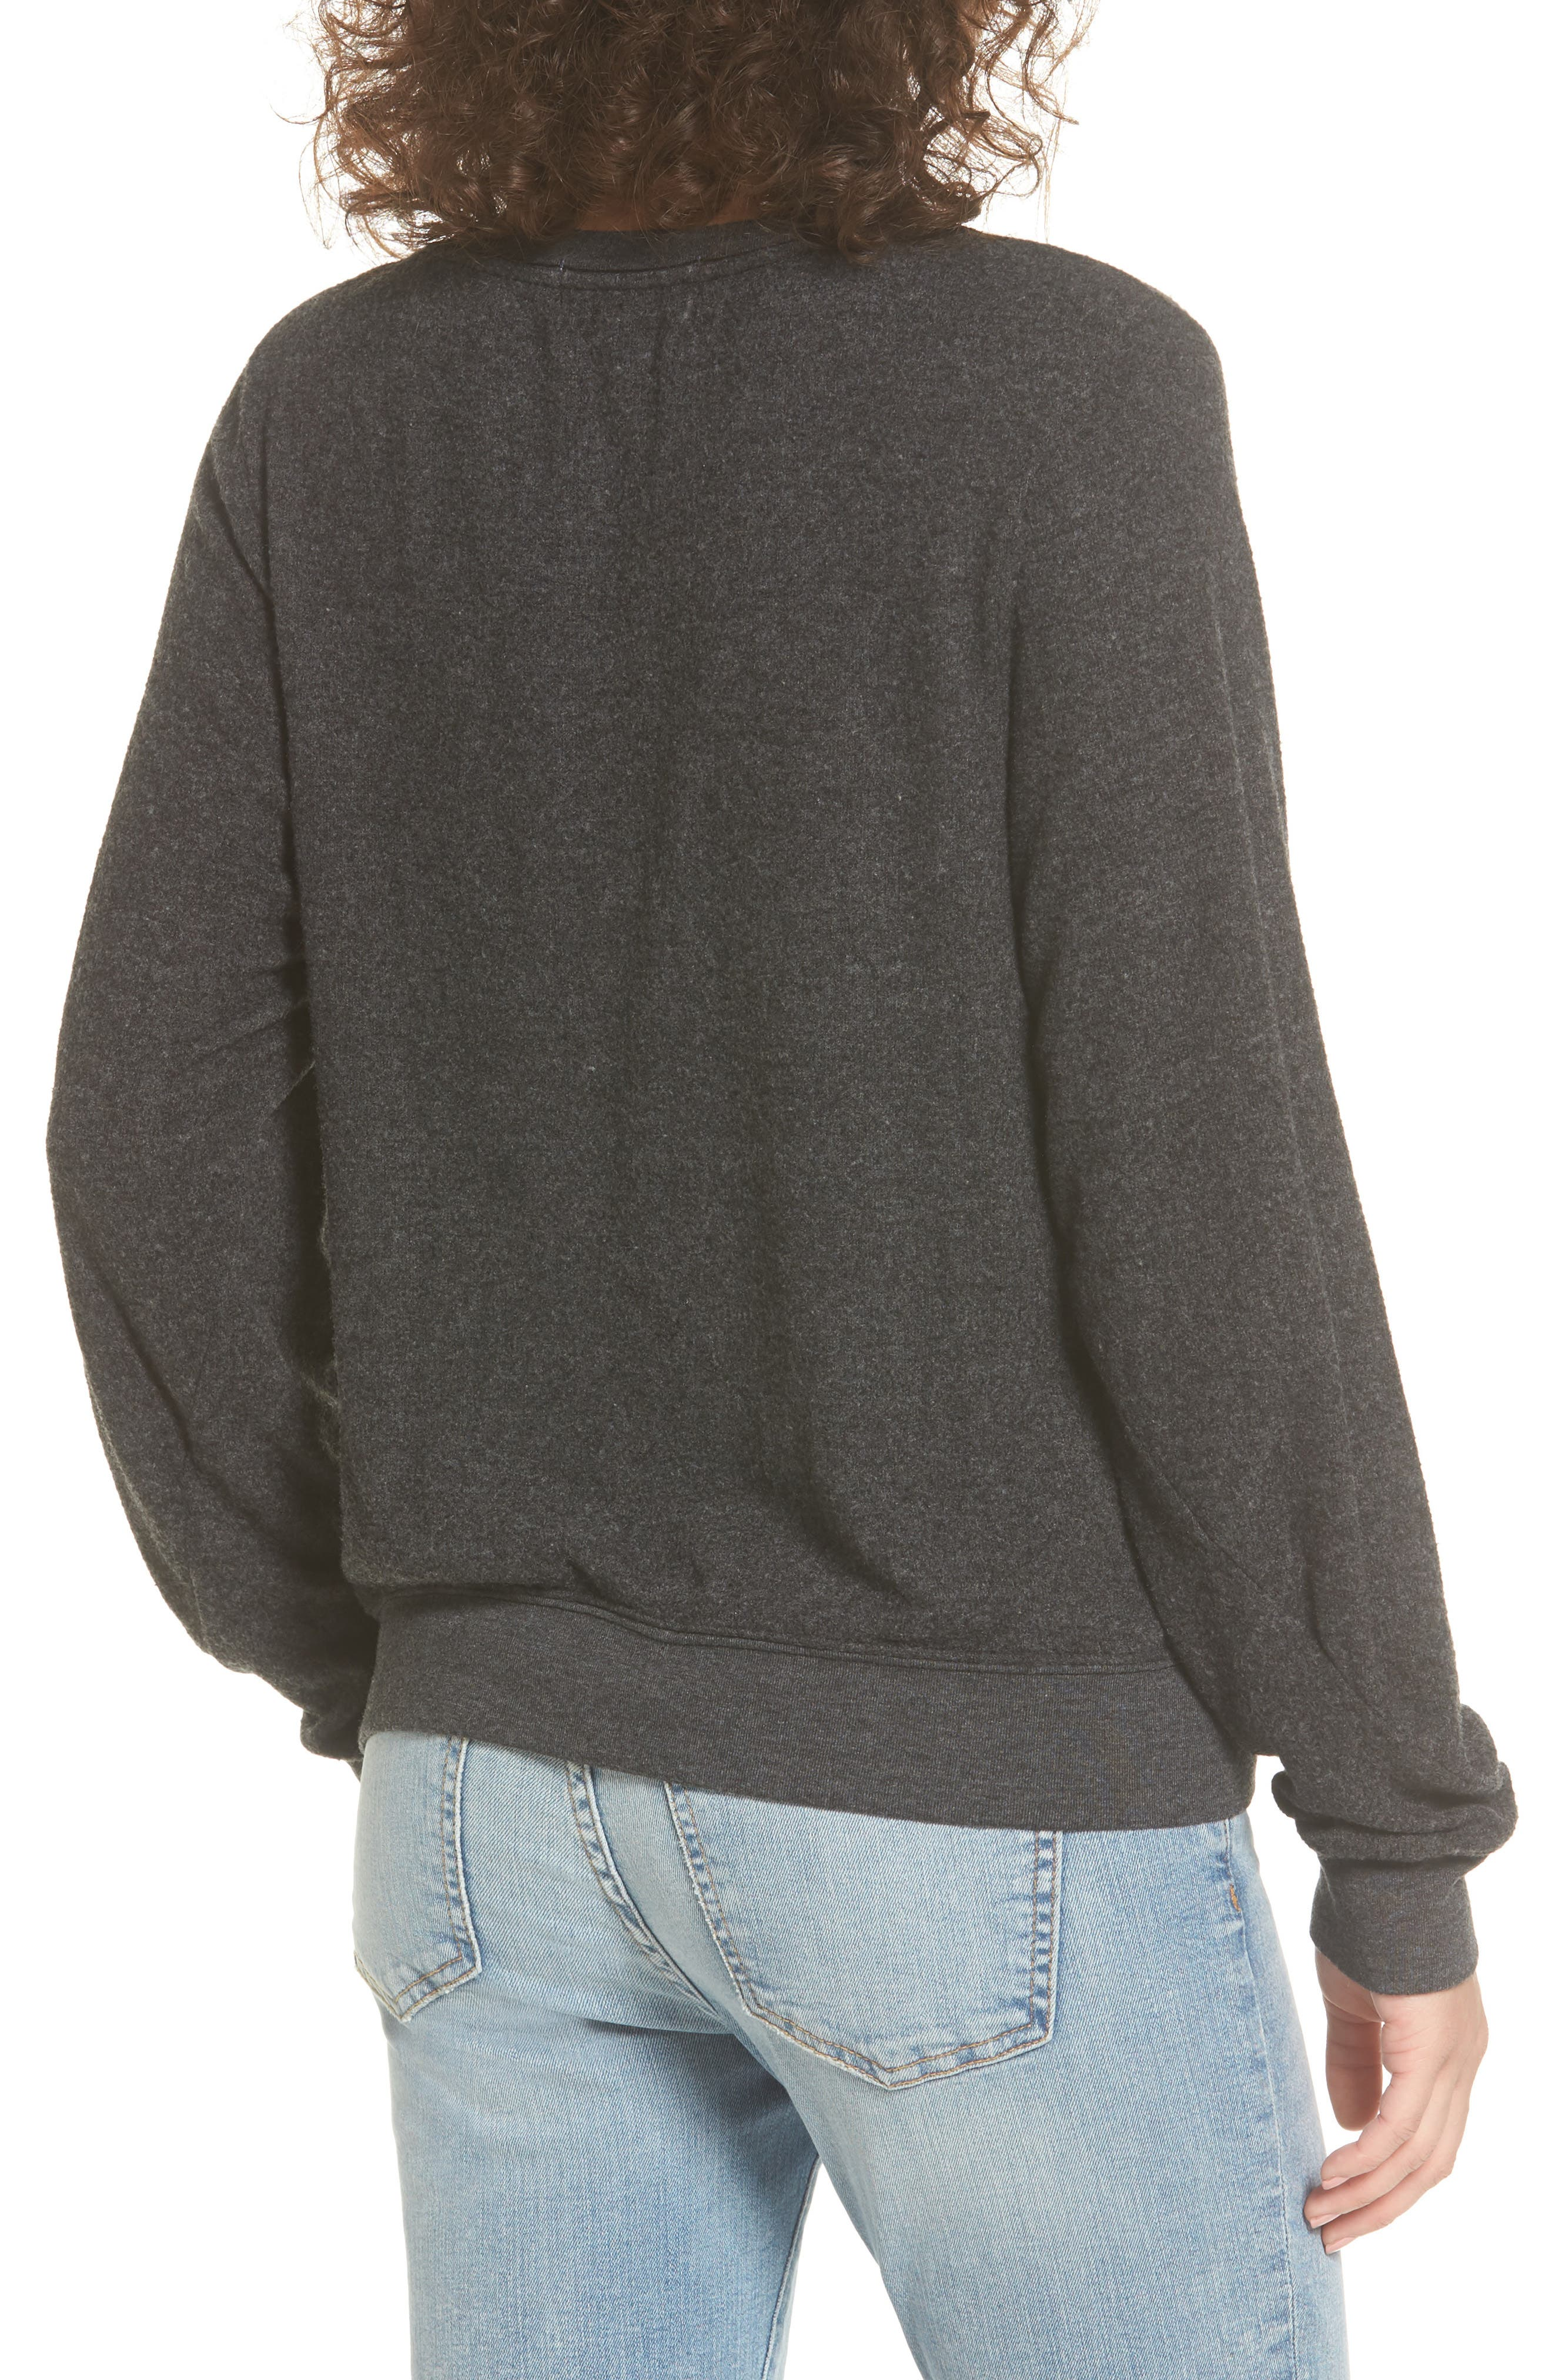 Weekend Pullover,                             Alternate thumbnail 2, color,                             Black